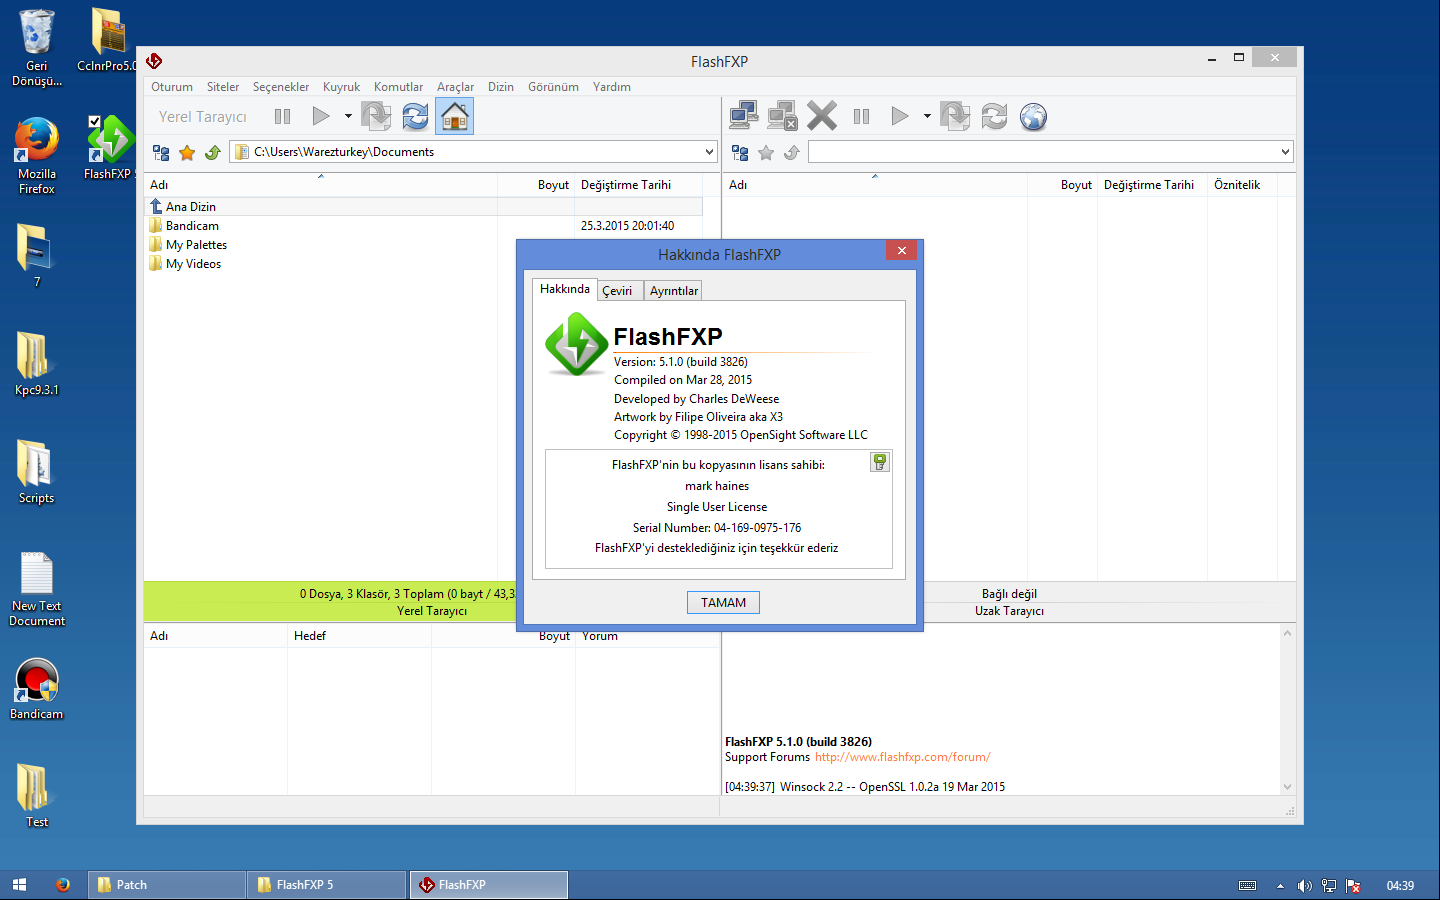 FlashFXP 5.4.0 Build 3935 Türkçe + Portable